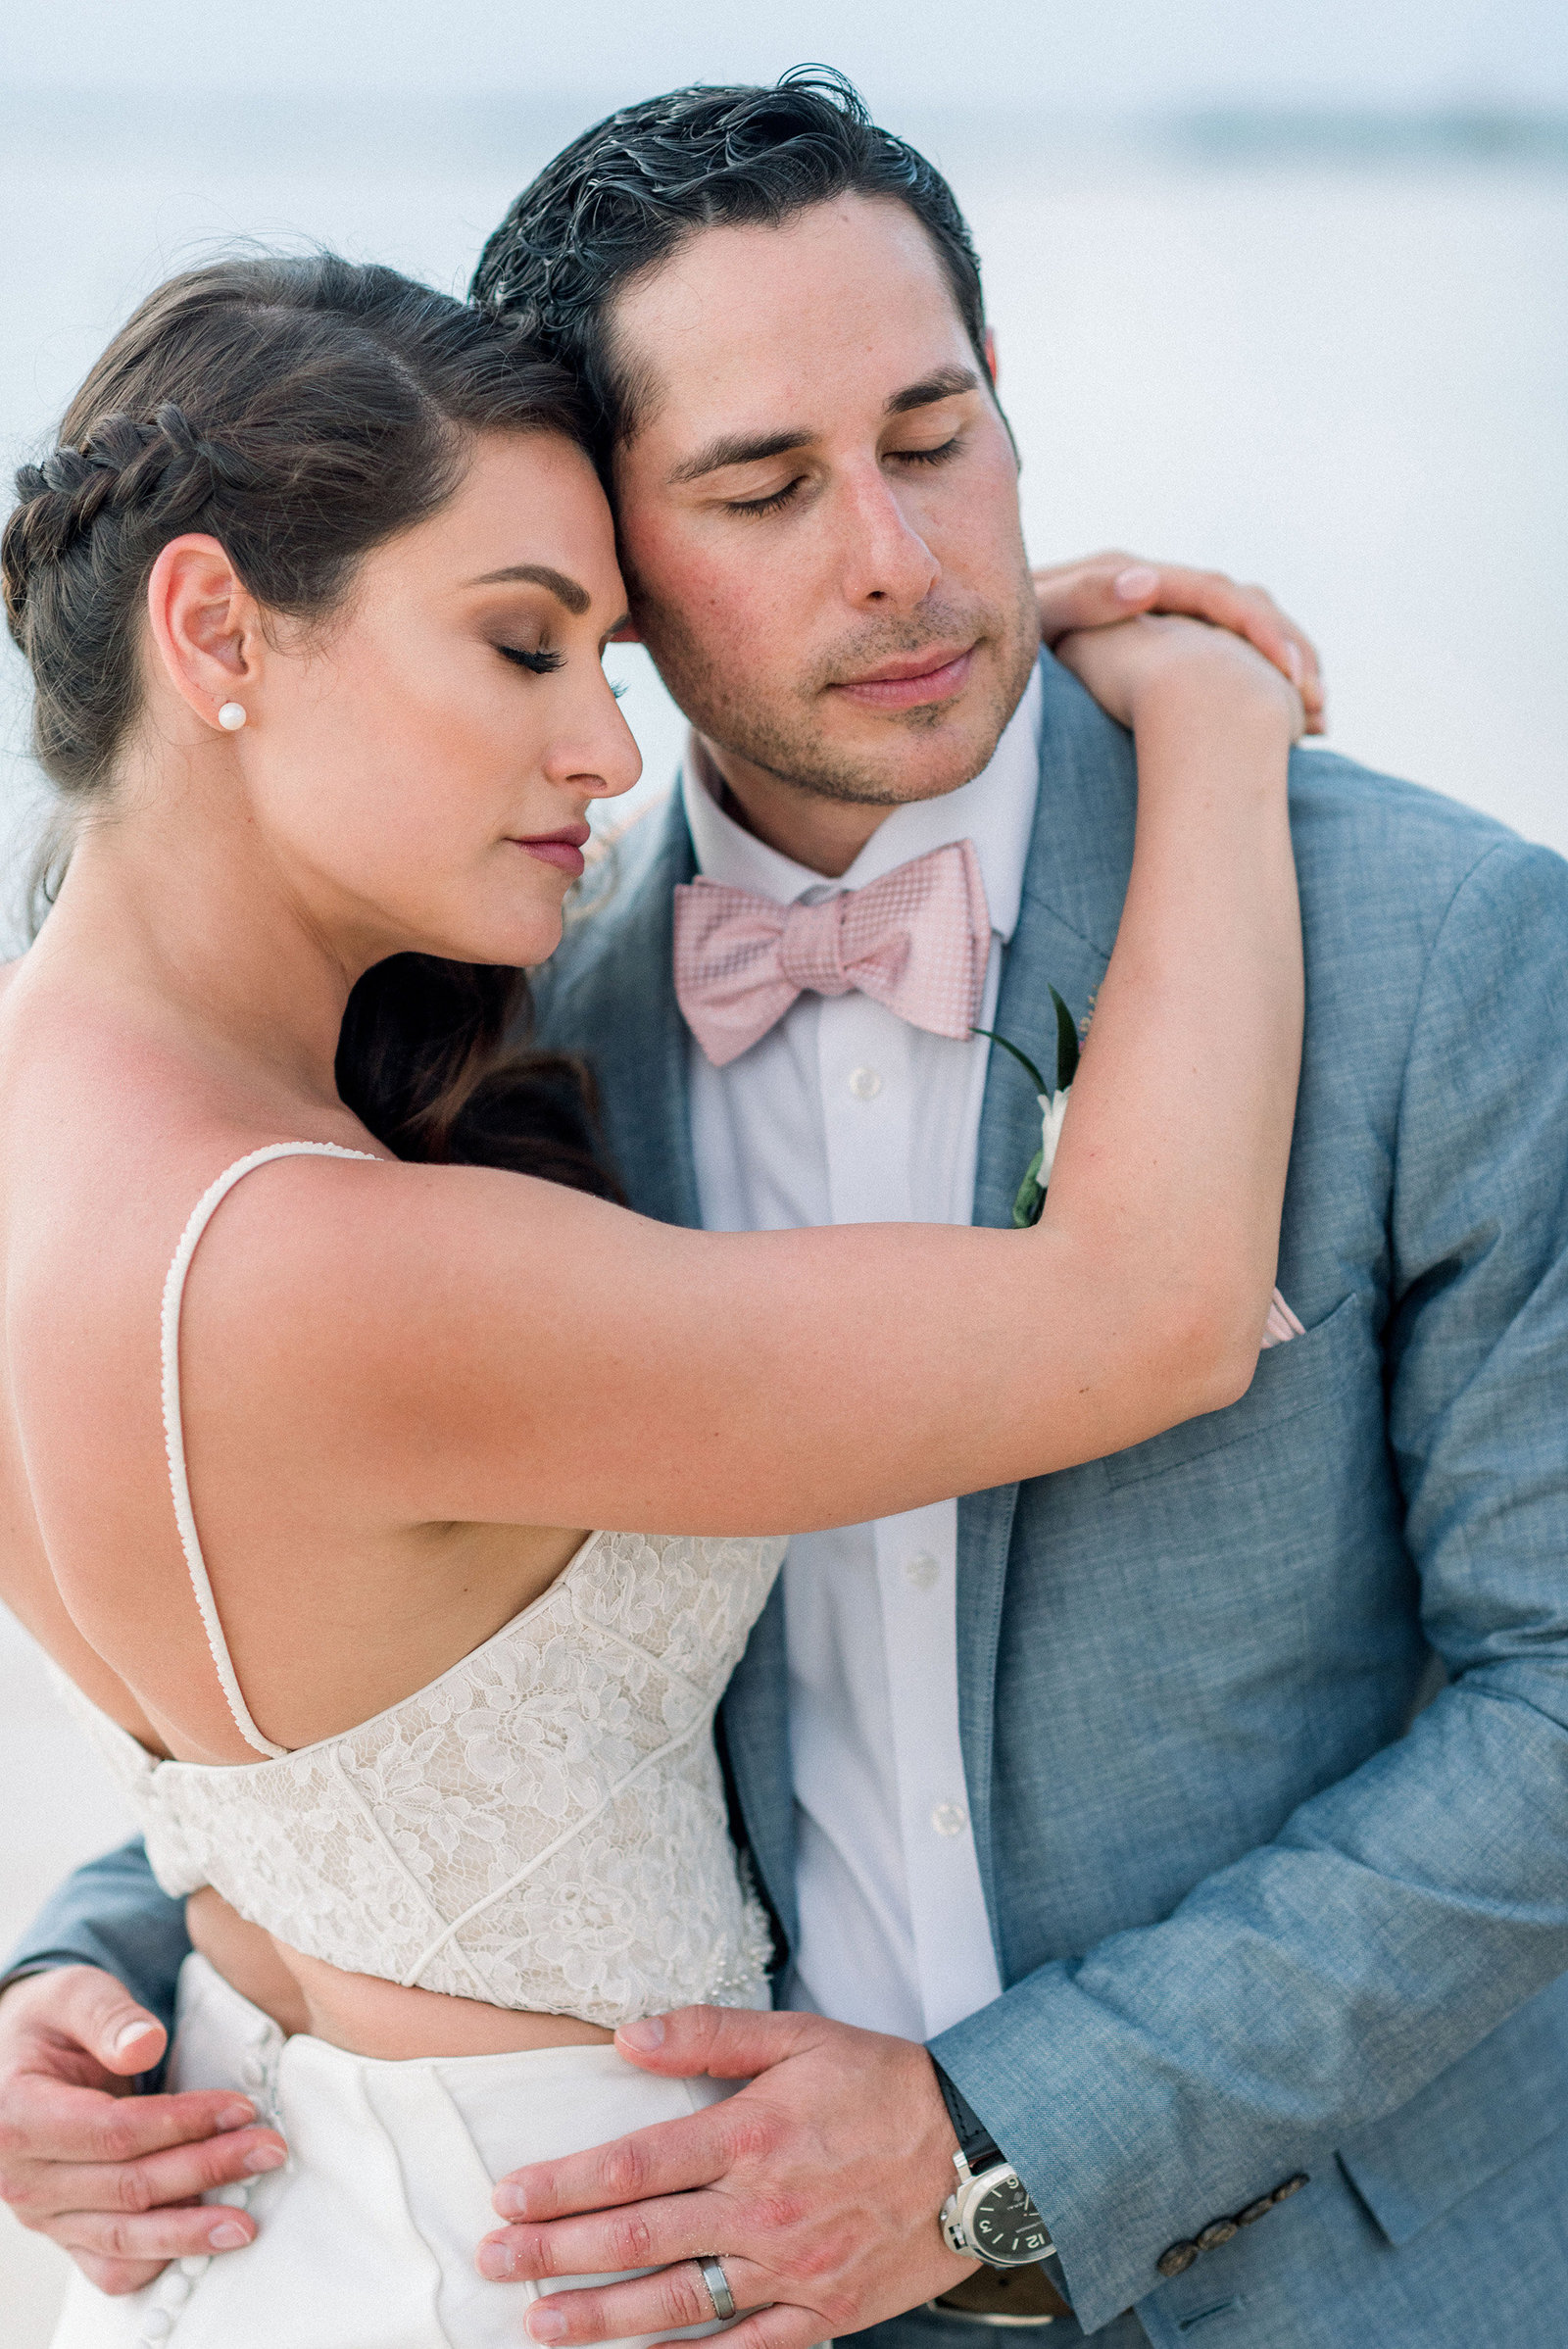 20180512-Pura-Soul-Photo-Ritz-Grand-Cayman-Wedding-125